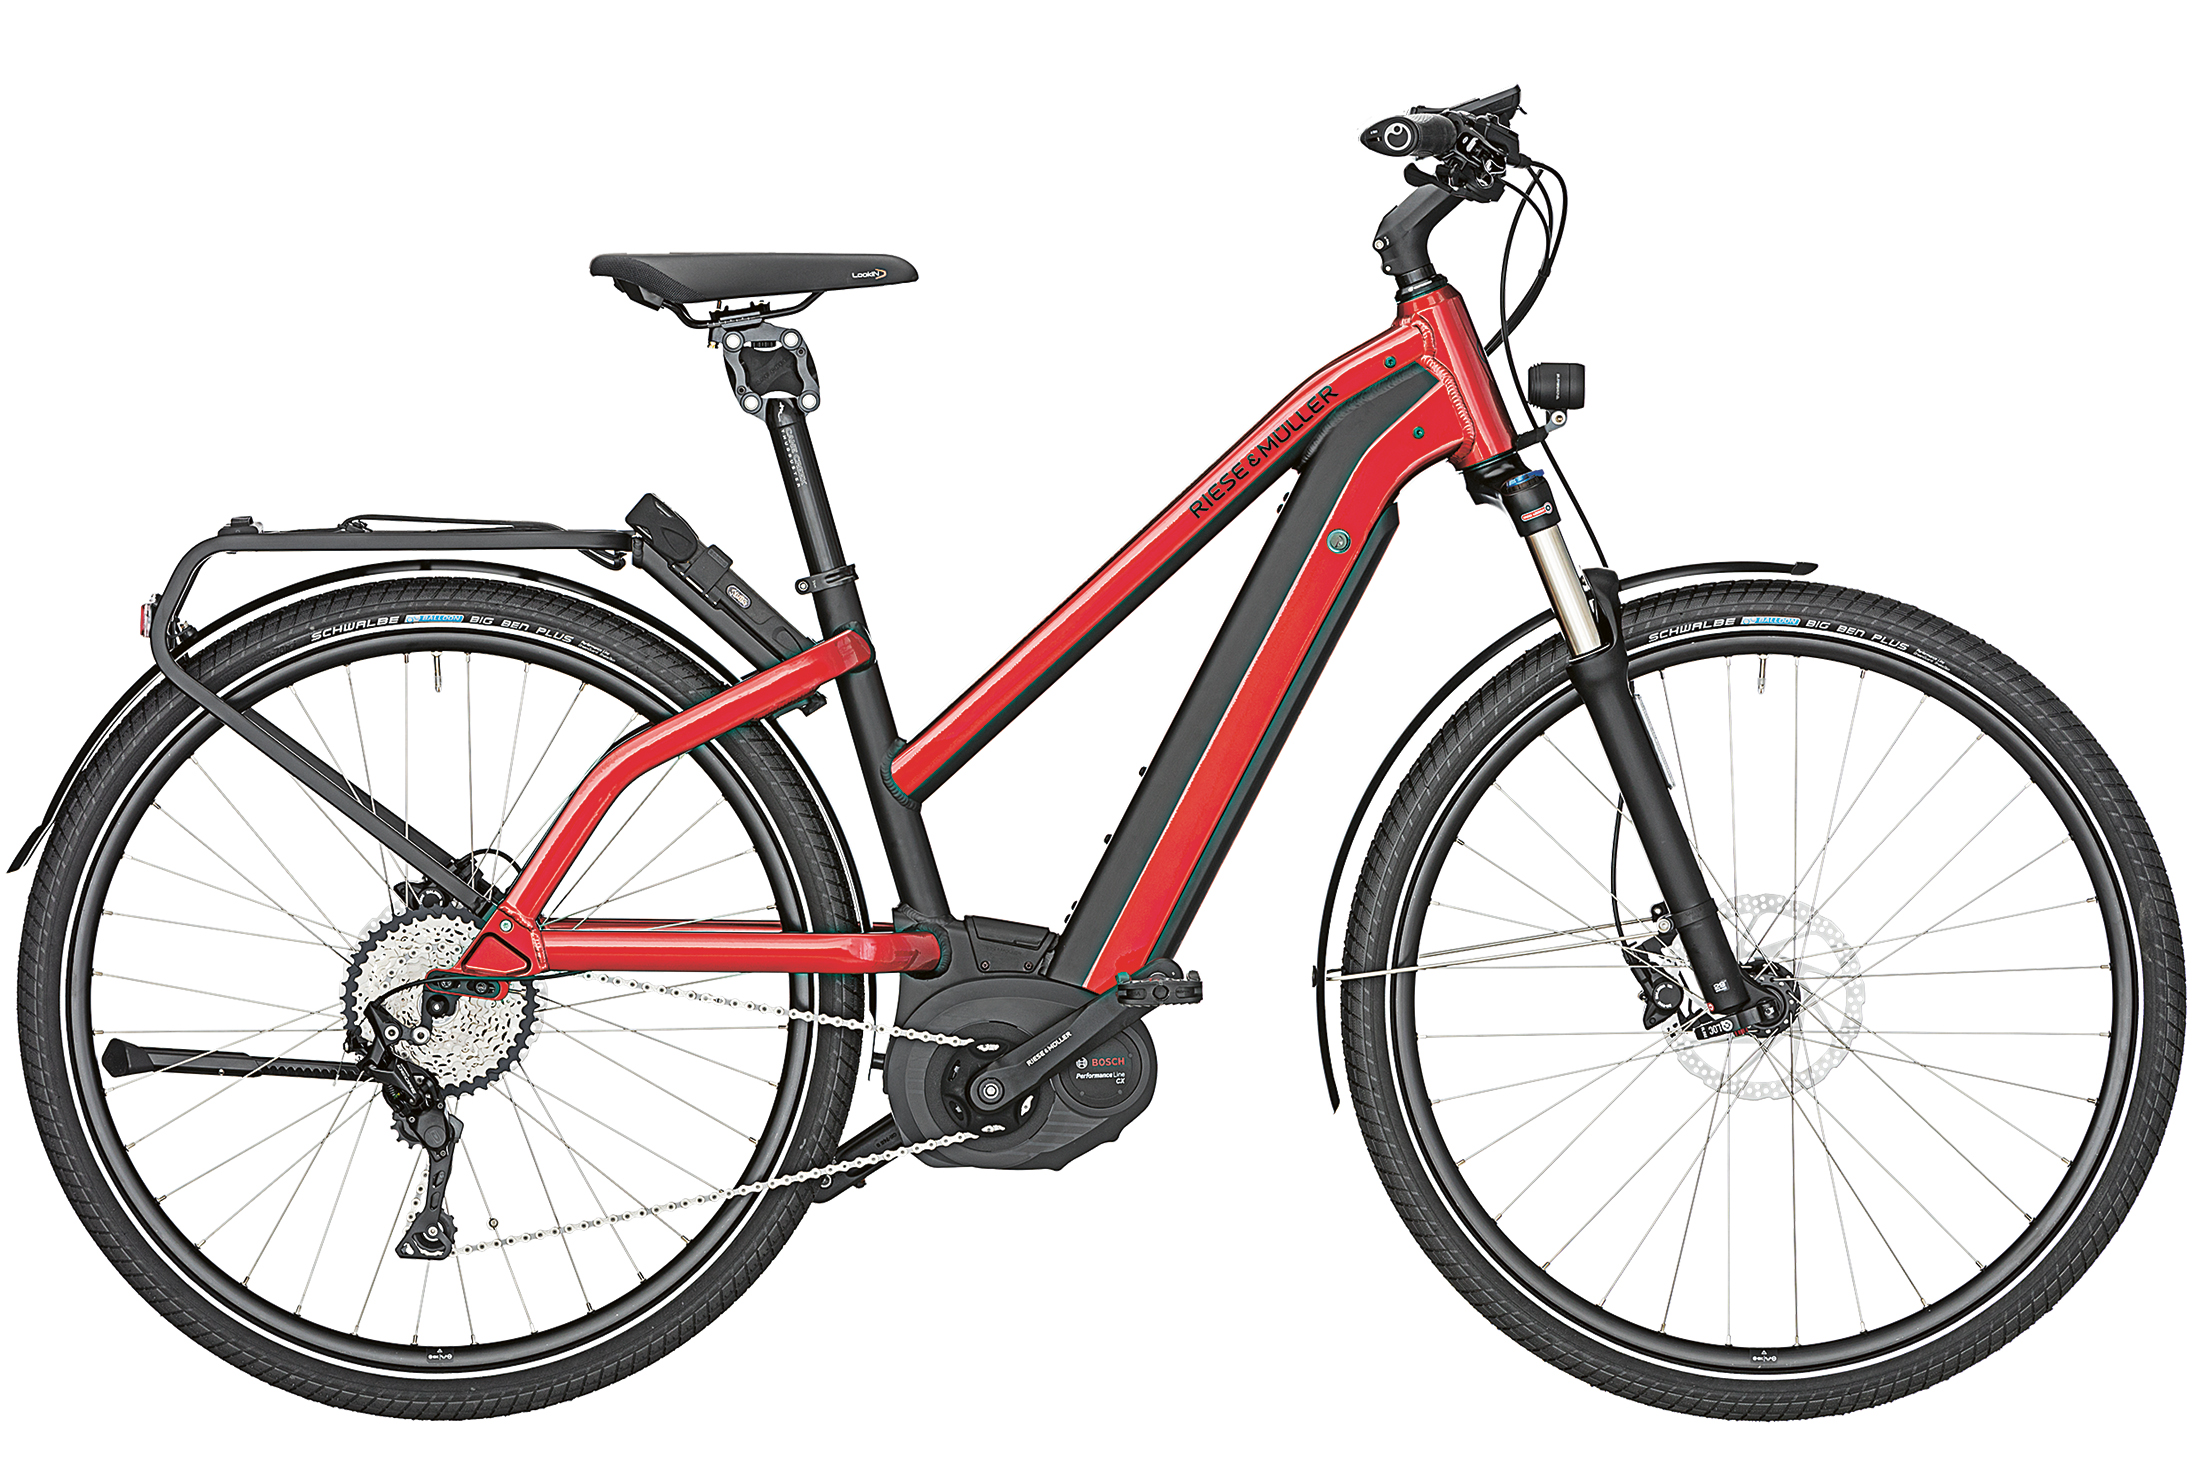 18_New-Charger_touring_Mixte_electric-red-metallic.jpg